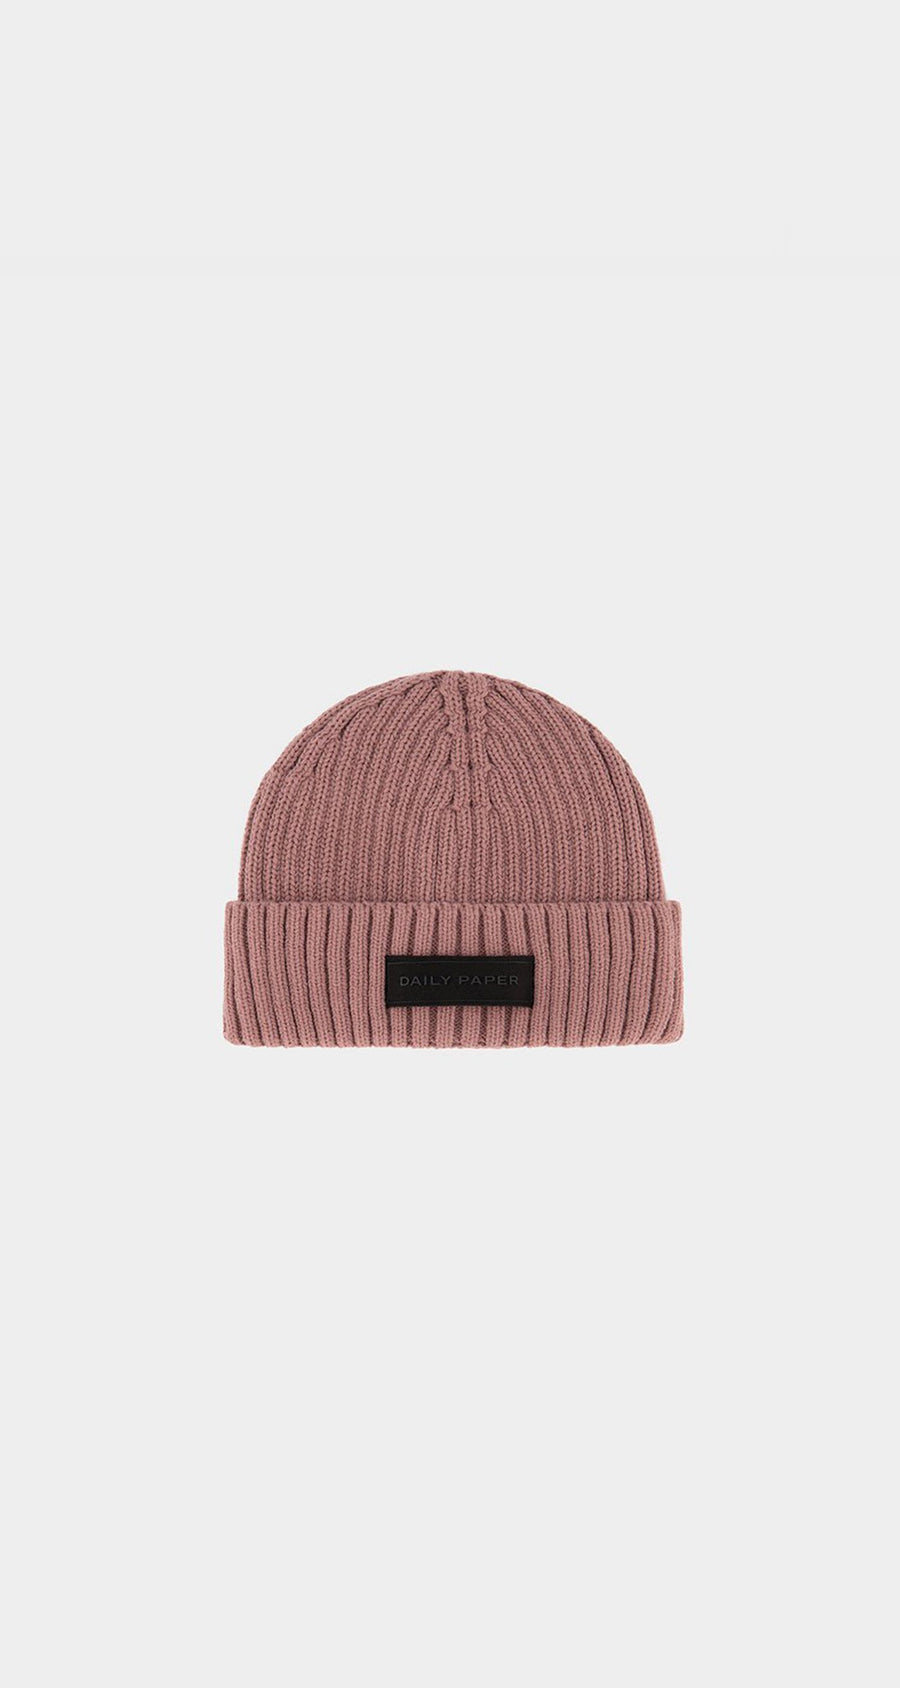 Daily Paper - Mauve Pink Essential Beanie